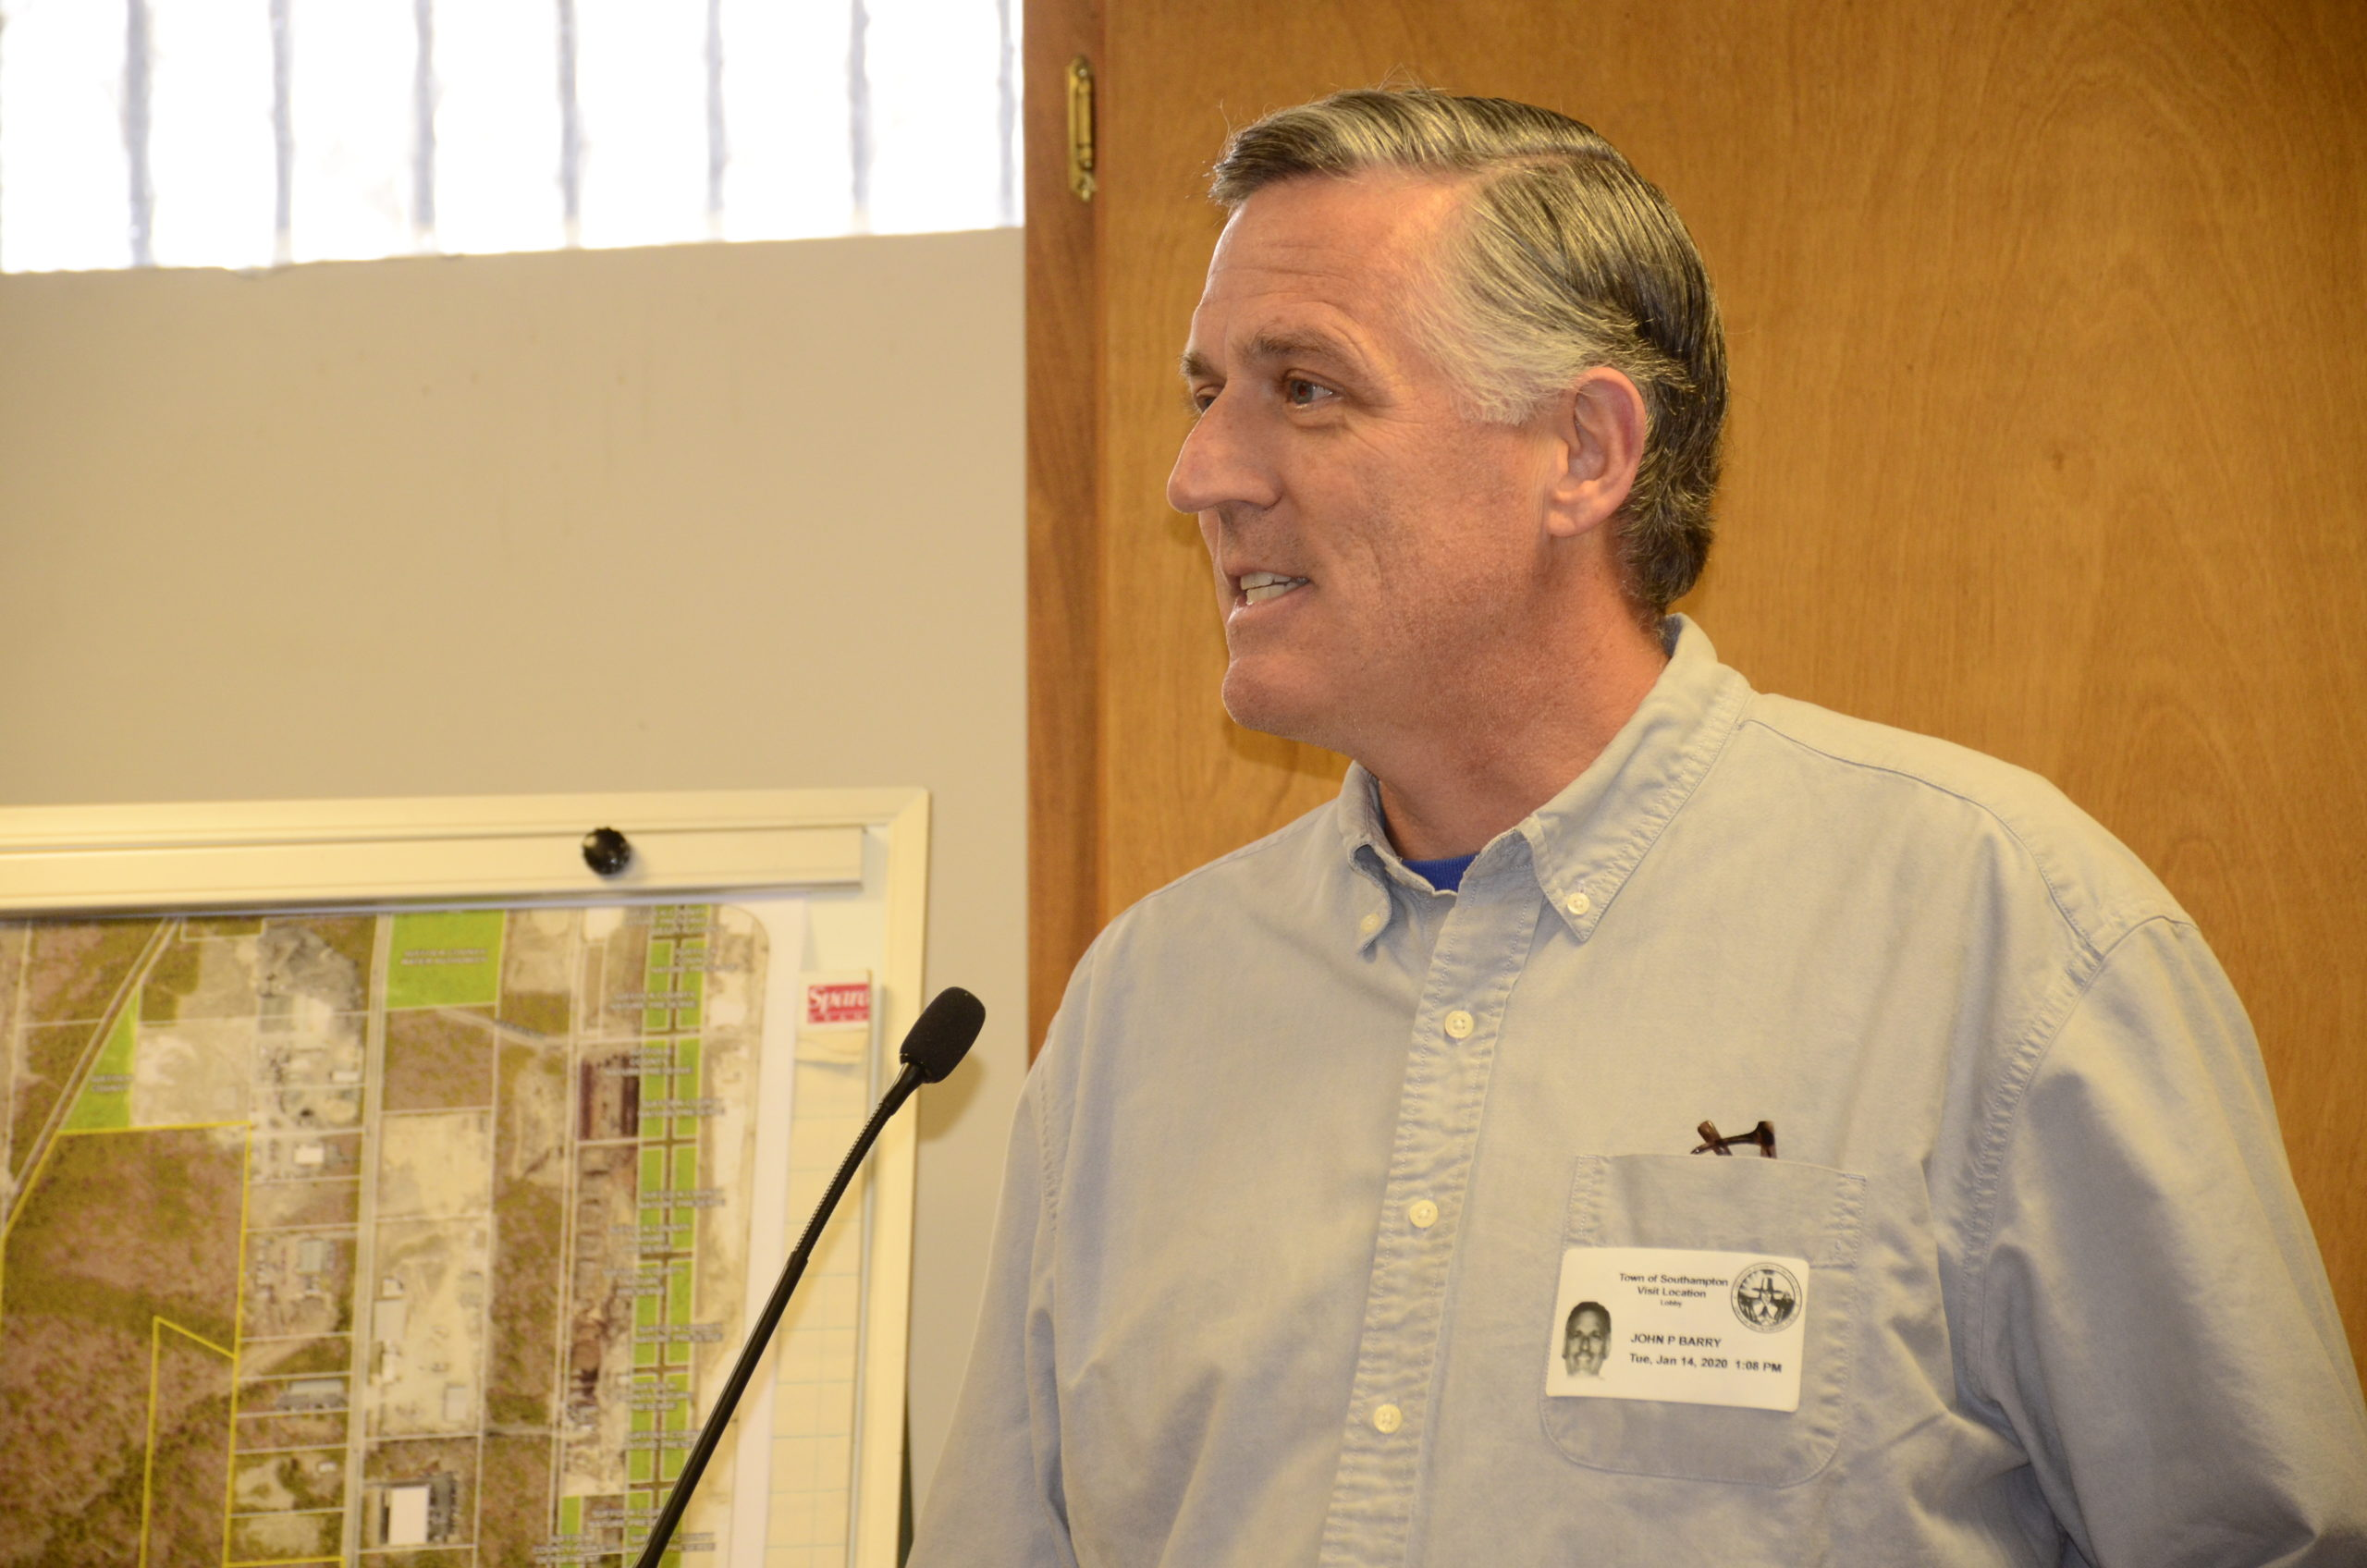 John Barry addressed the town board Tuesday afternoon regarding the 160-acre land parcel in Speonk being considered for CPF.